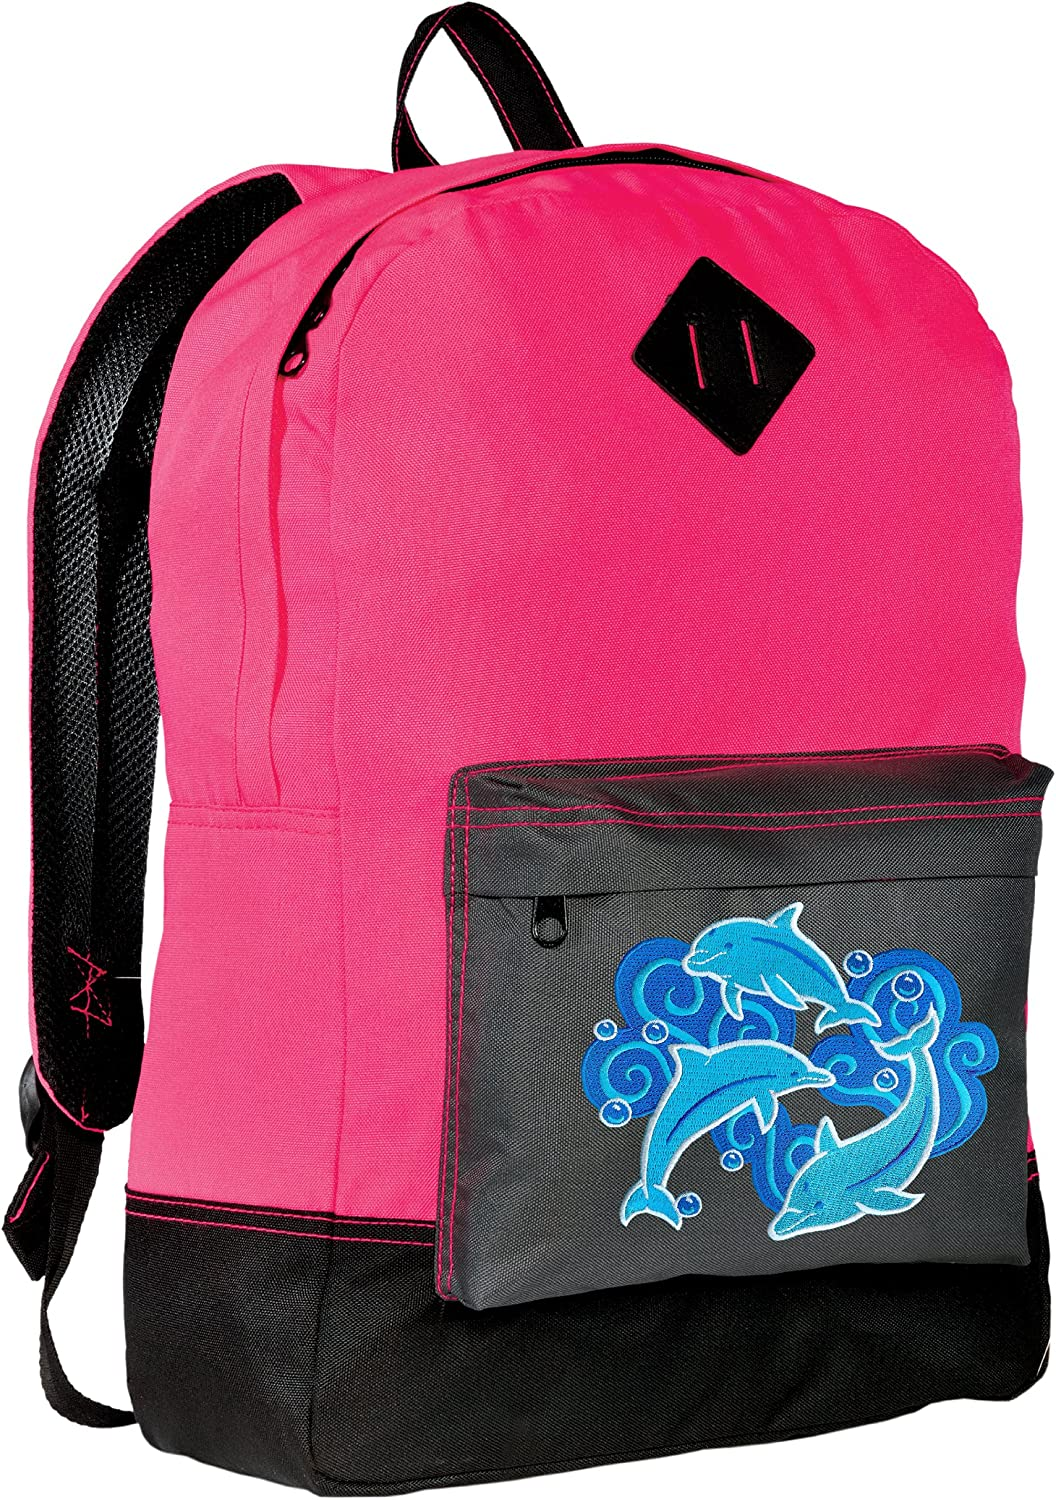 Dolphins Backpack CLASSIC STYLE safety Backpacks Visibilit High Los Angeles Mall Dolphin